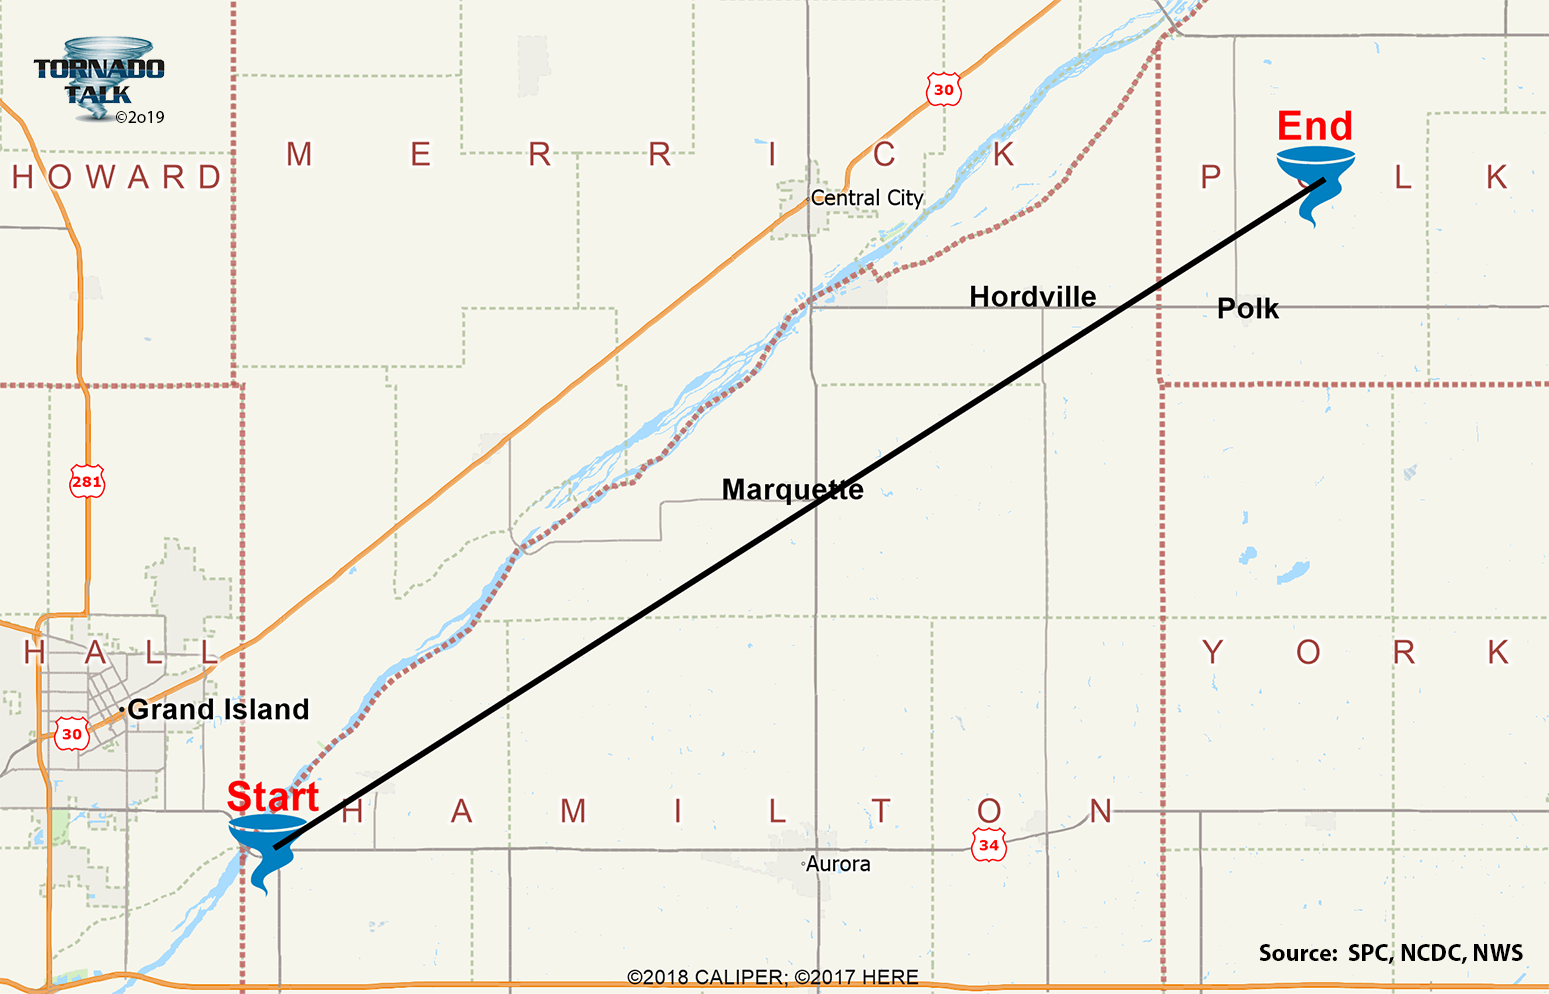 Hamilton & Polk Counties, NE F4 Tornado – April 7, 1978